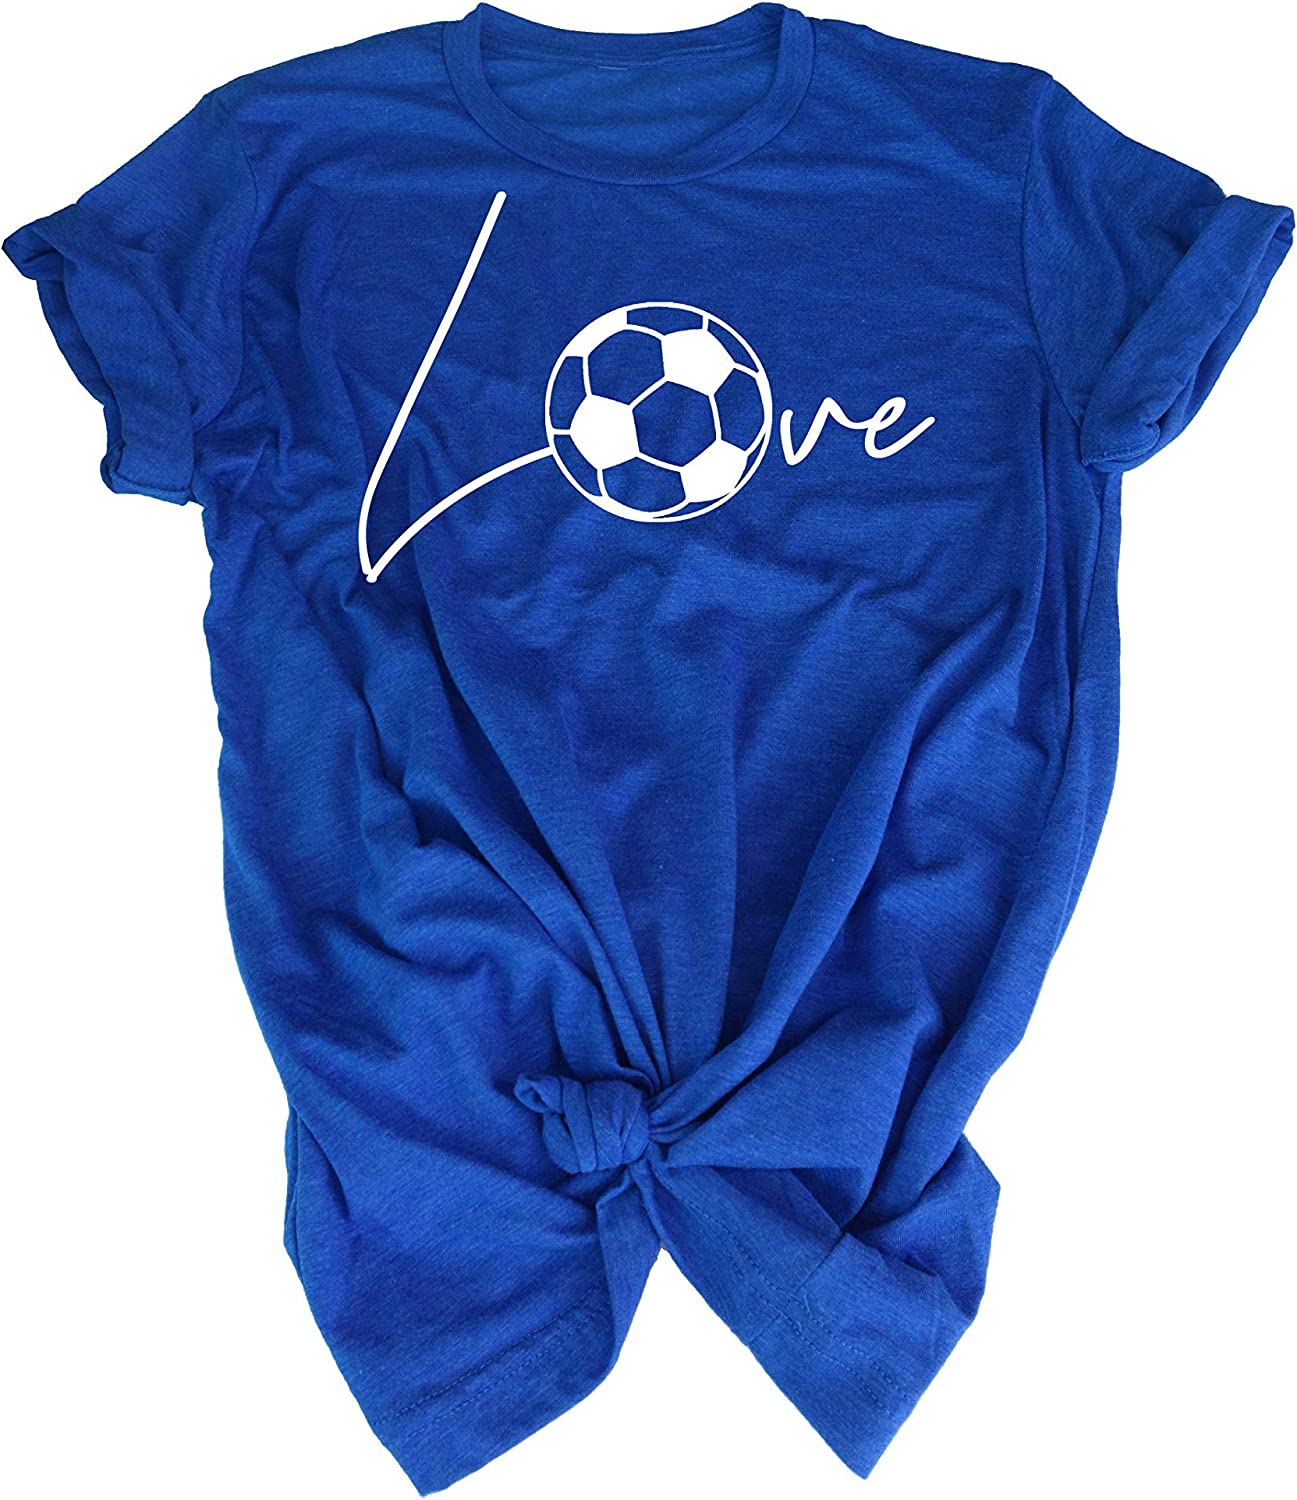 What/'s Life Without Goals Soccer Fans Gifts Toddler Kids T-Shirt Soccer Lovers